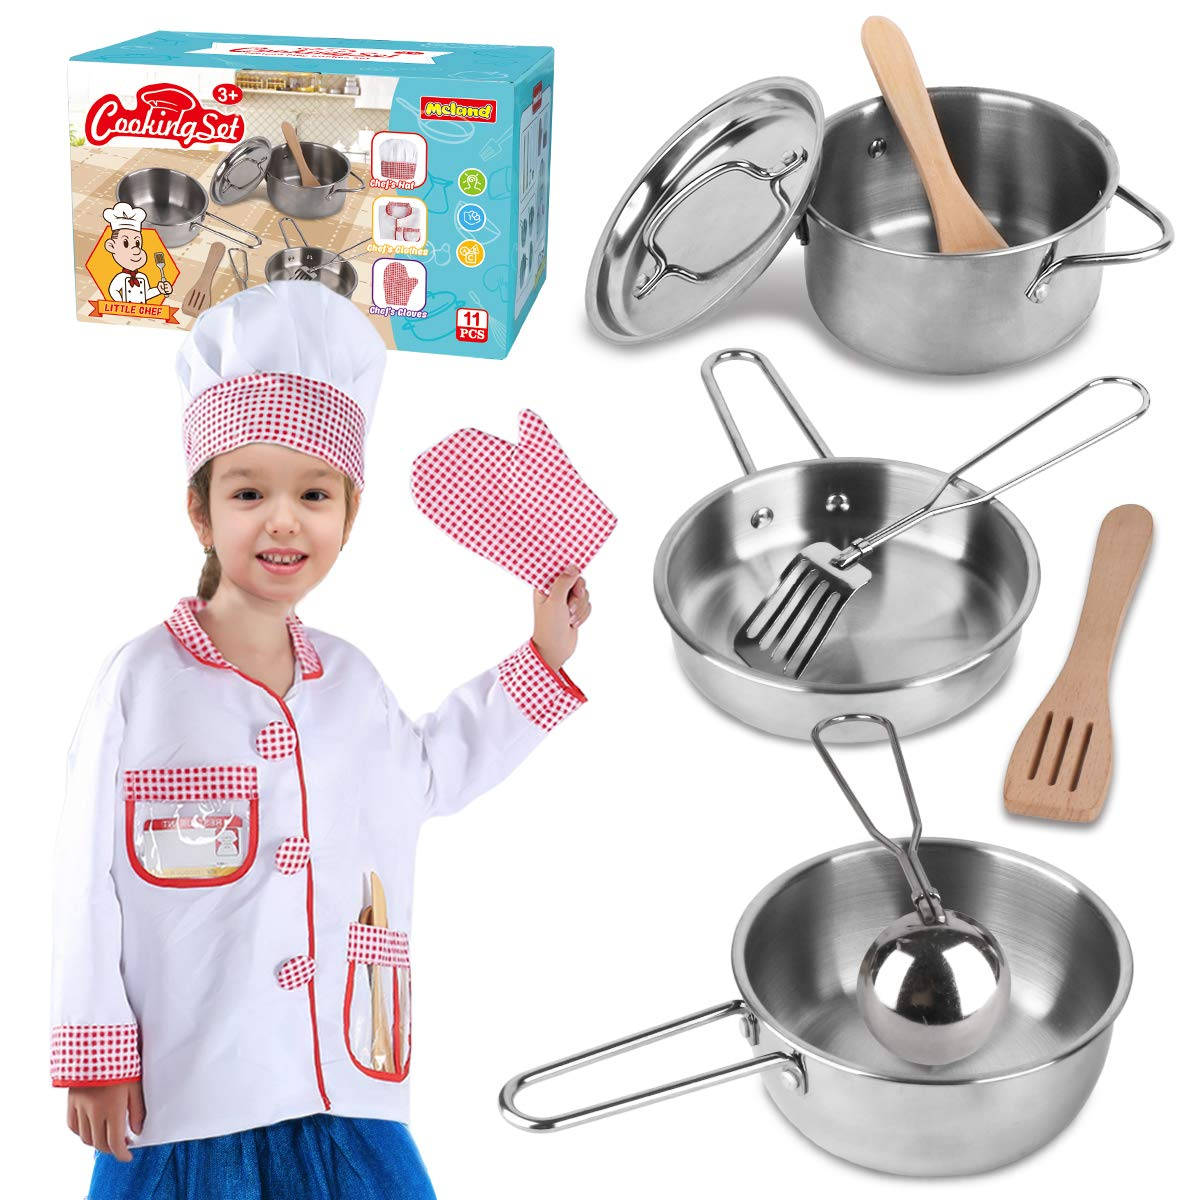 Play Kitchen Accessories for Toddlers with Stainless Steel Cookware Pots and Pans Kids Toy Kitchen Set, Cooking Utensils, Apron & Chef Hat for Girls Boys 3, 4, 5, 6, 7 and 8 Year Old